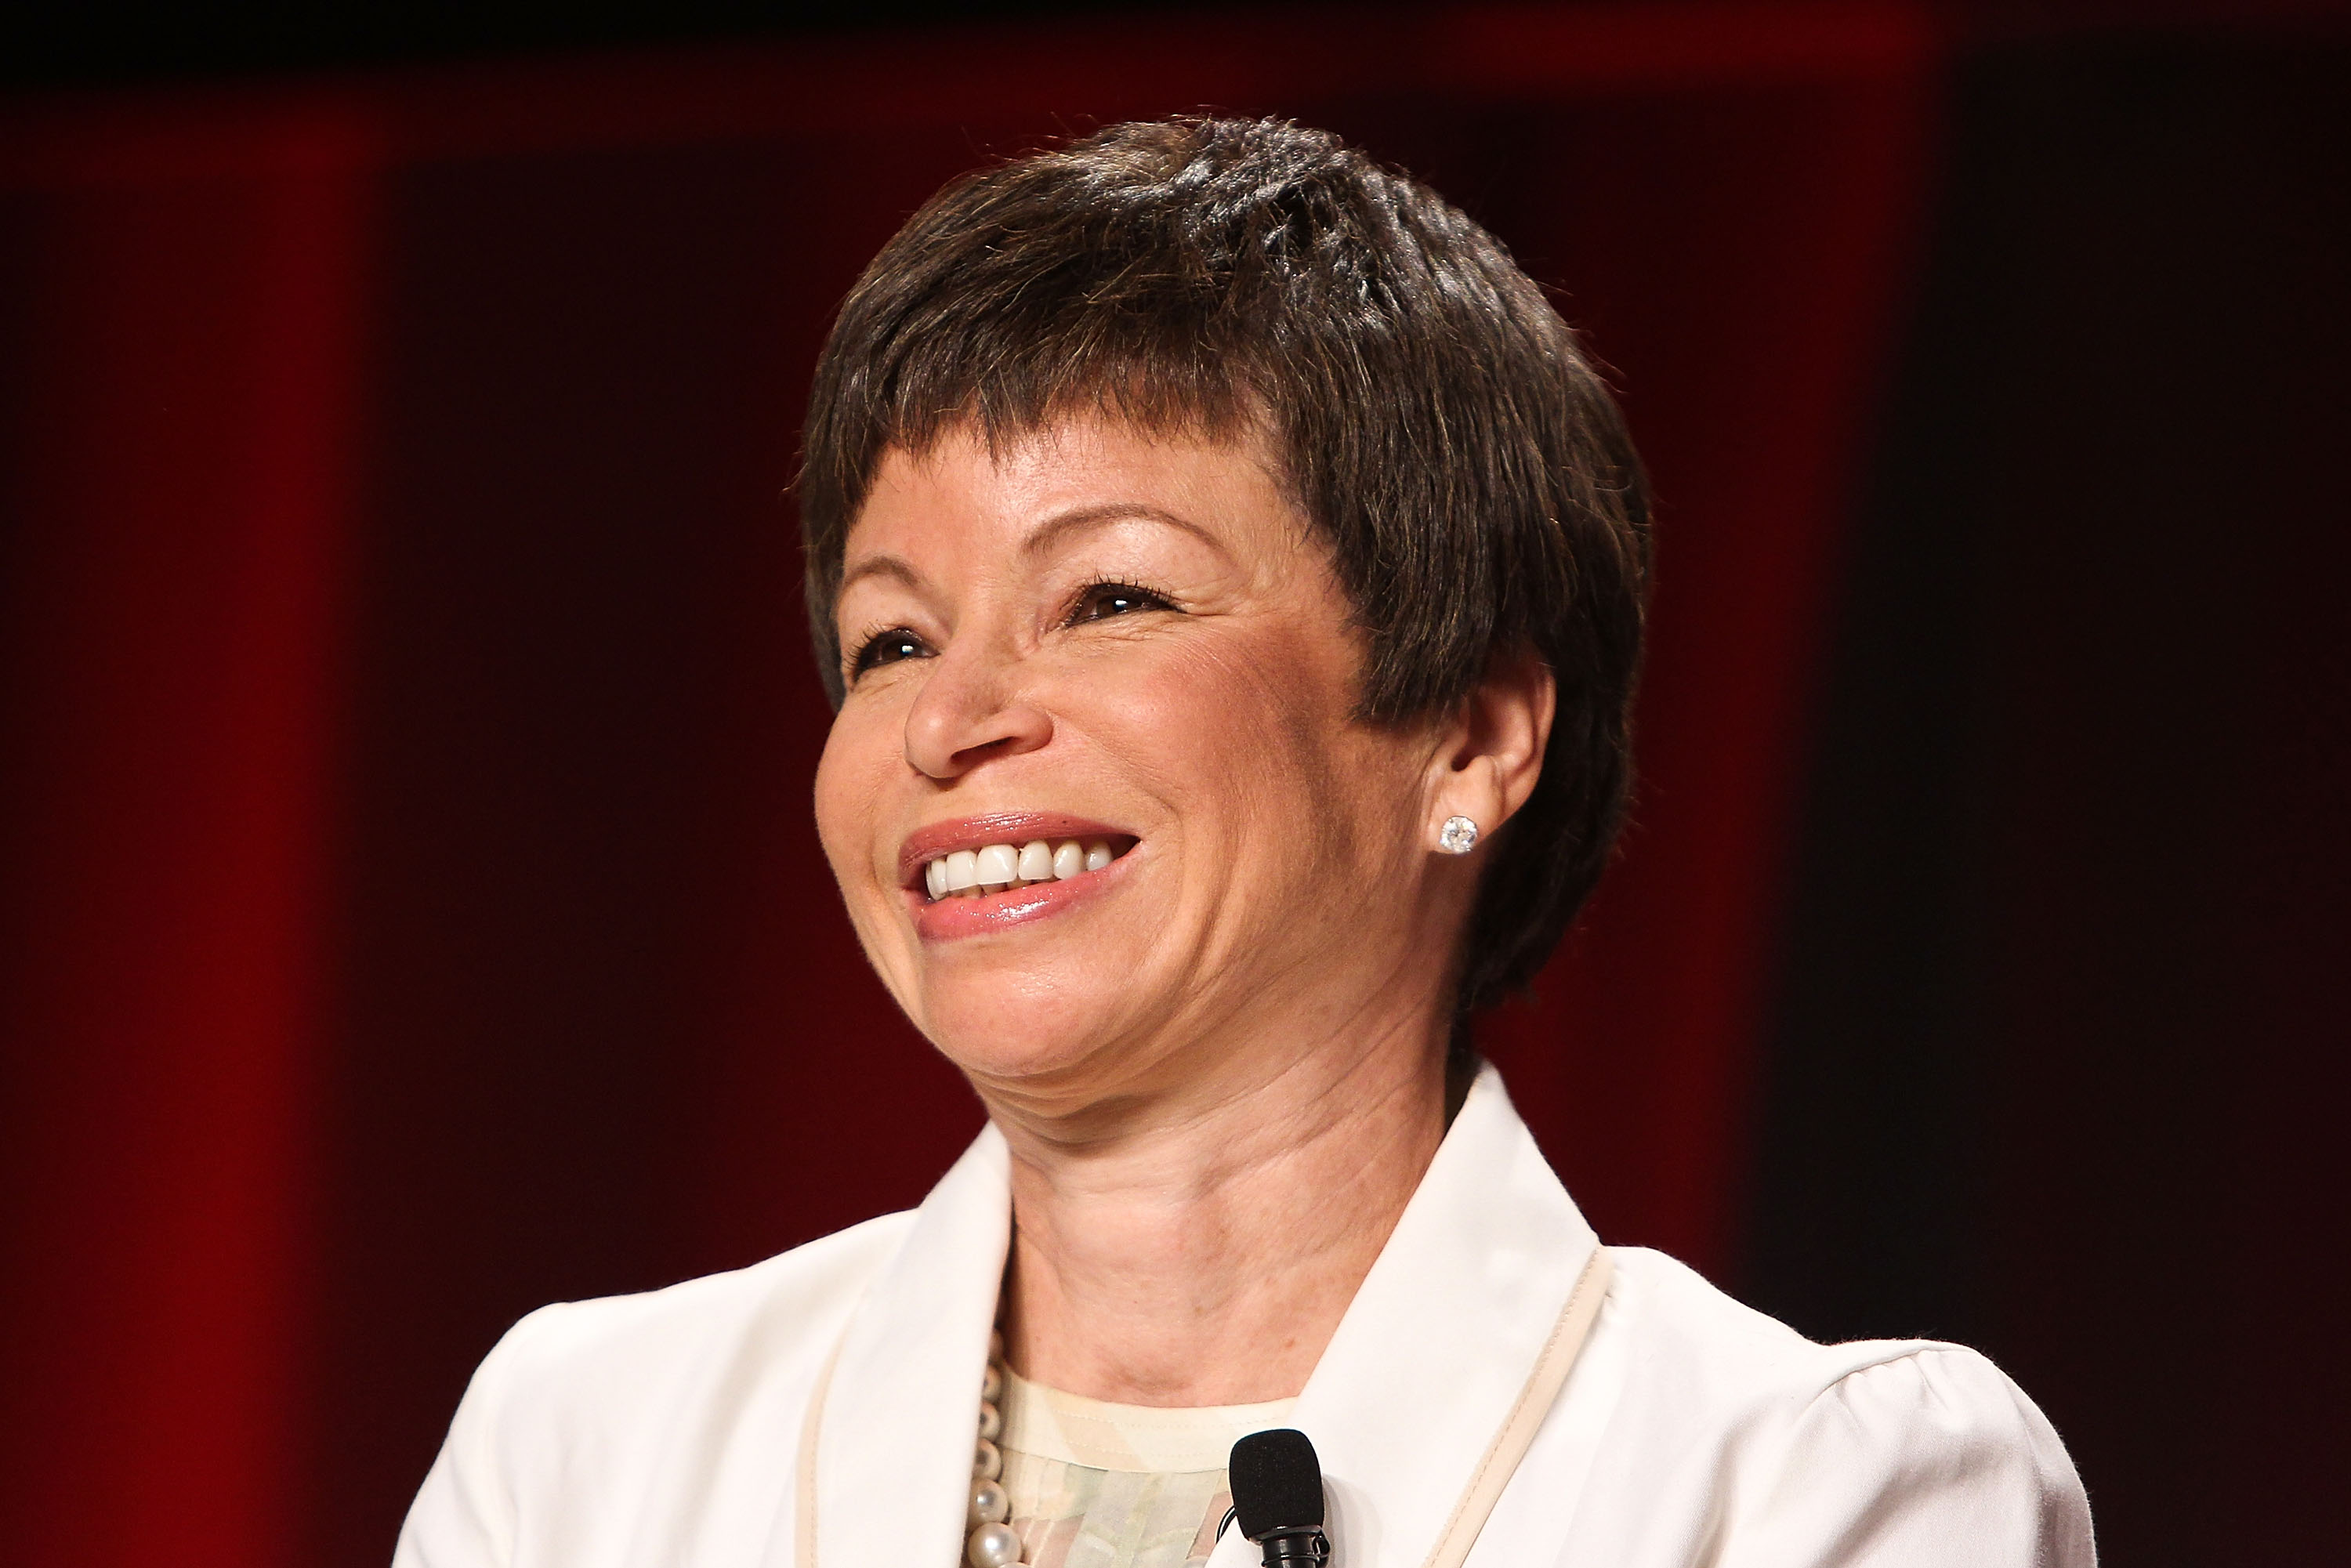 White House senior adviser Valerie Jarrett participates in a panel discussion during the 2012 Federal Partners Bullying Prevention summit at the Marriott Wardman Park Hotel on August 7, 2012 in Washington, DC.